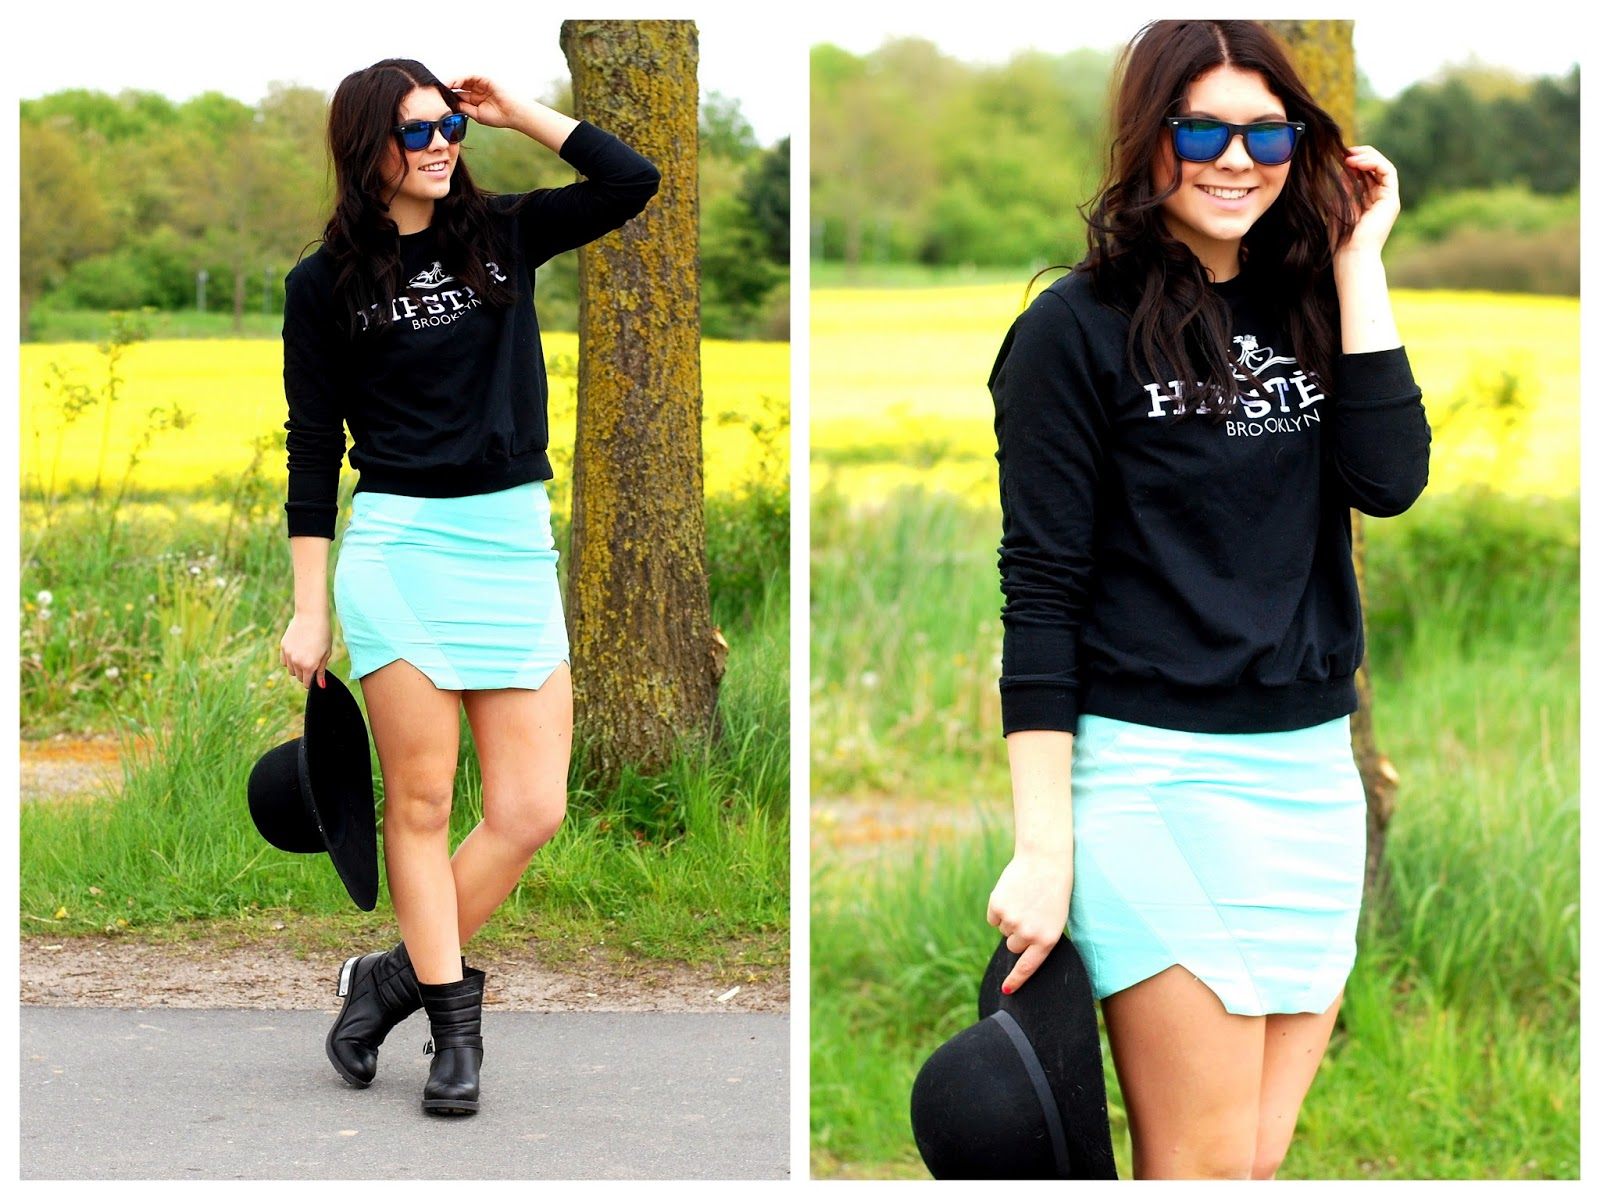 http://finjamaries.blogspot.de/2014/05/same-event-different-outfits.html